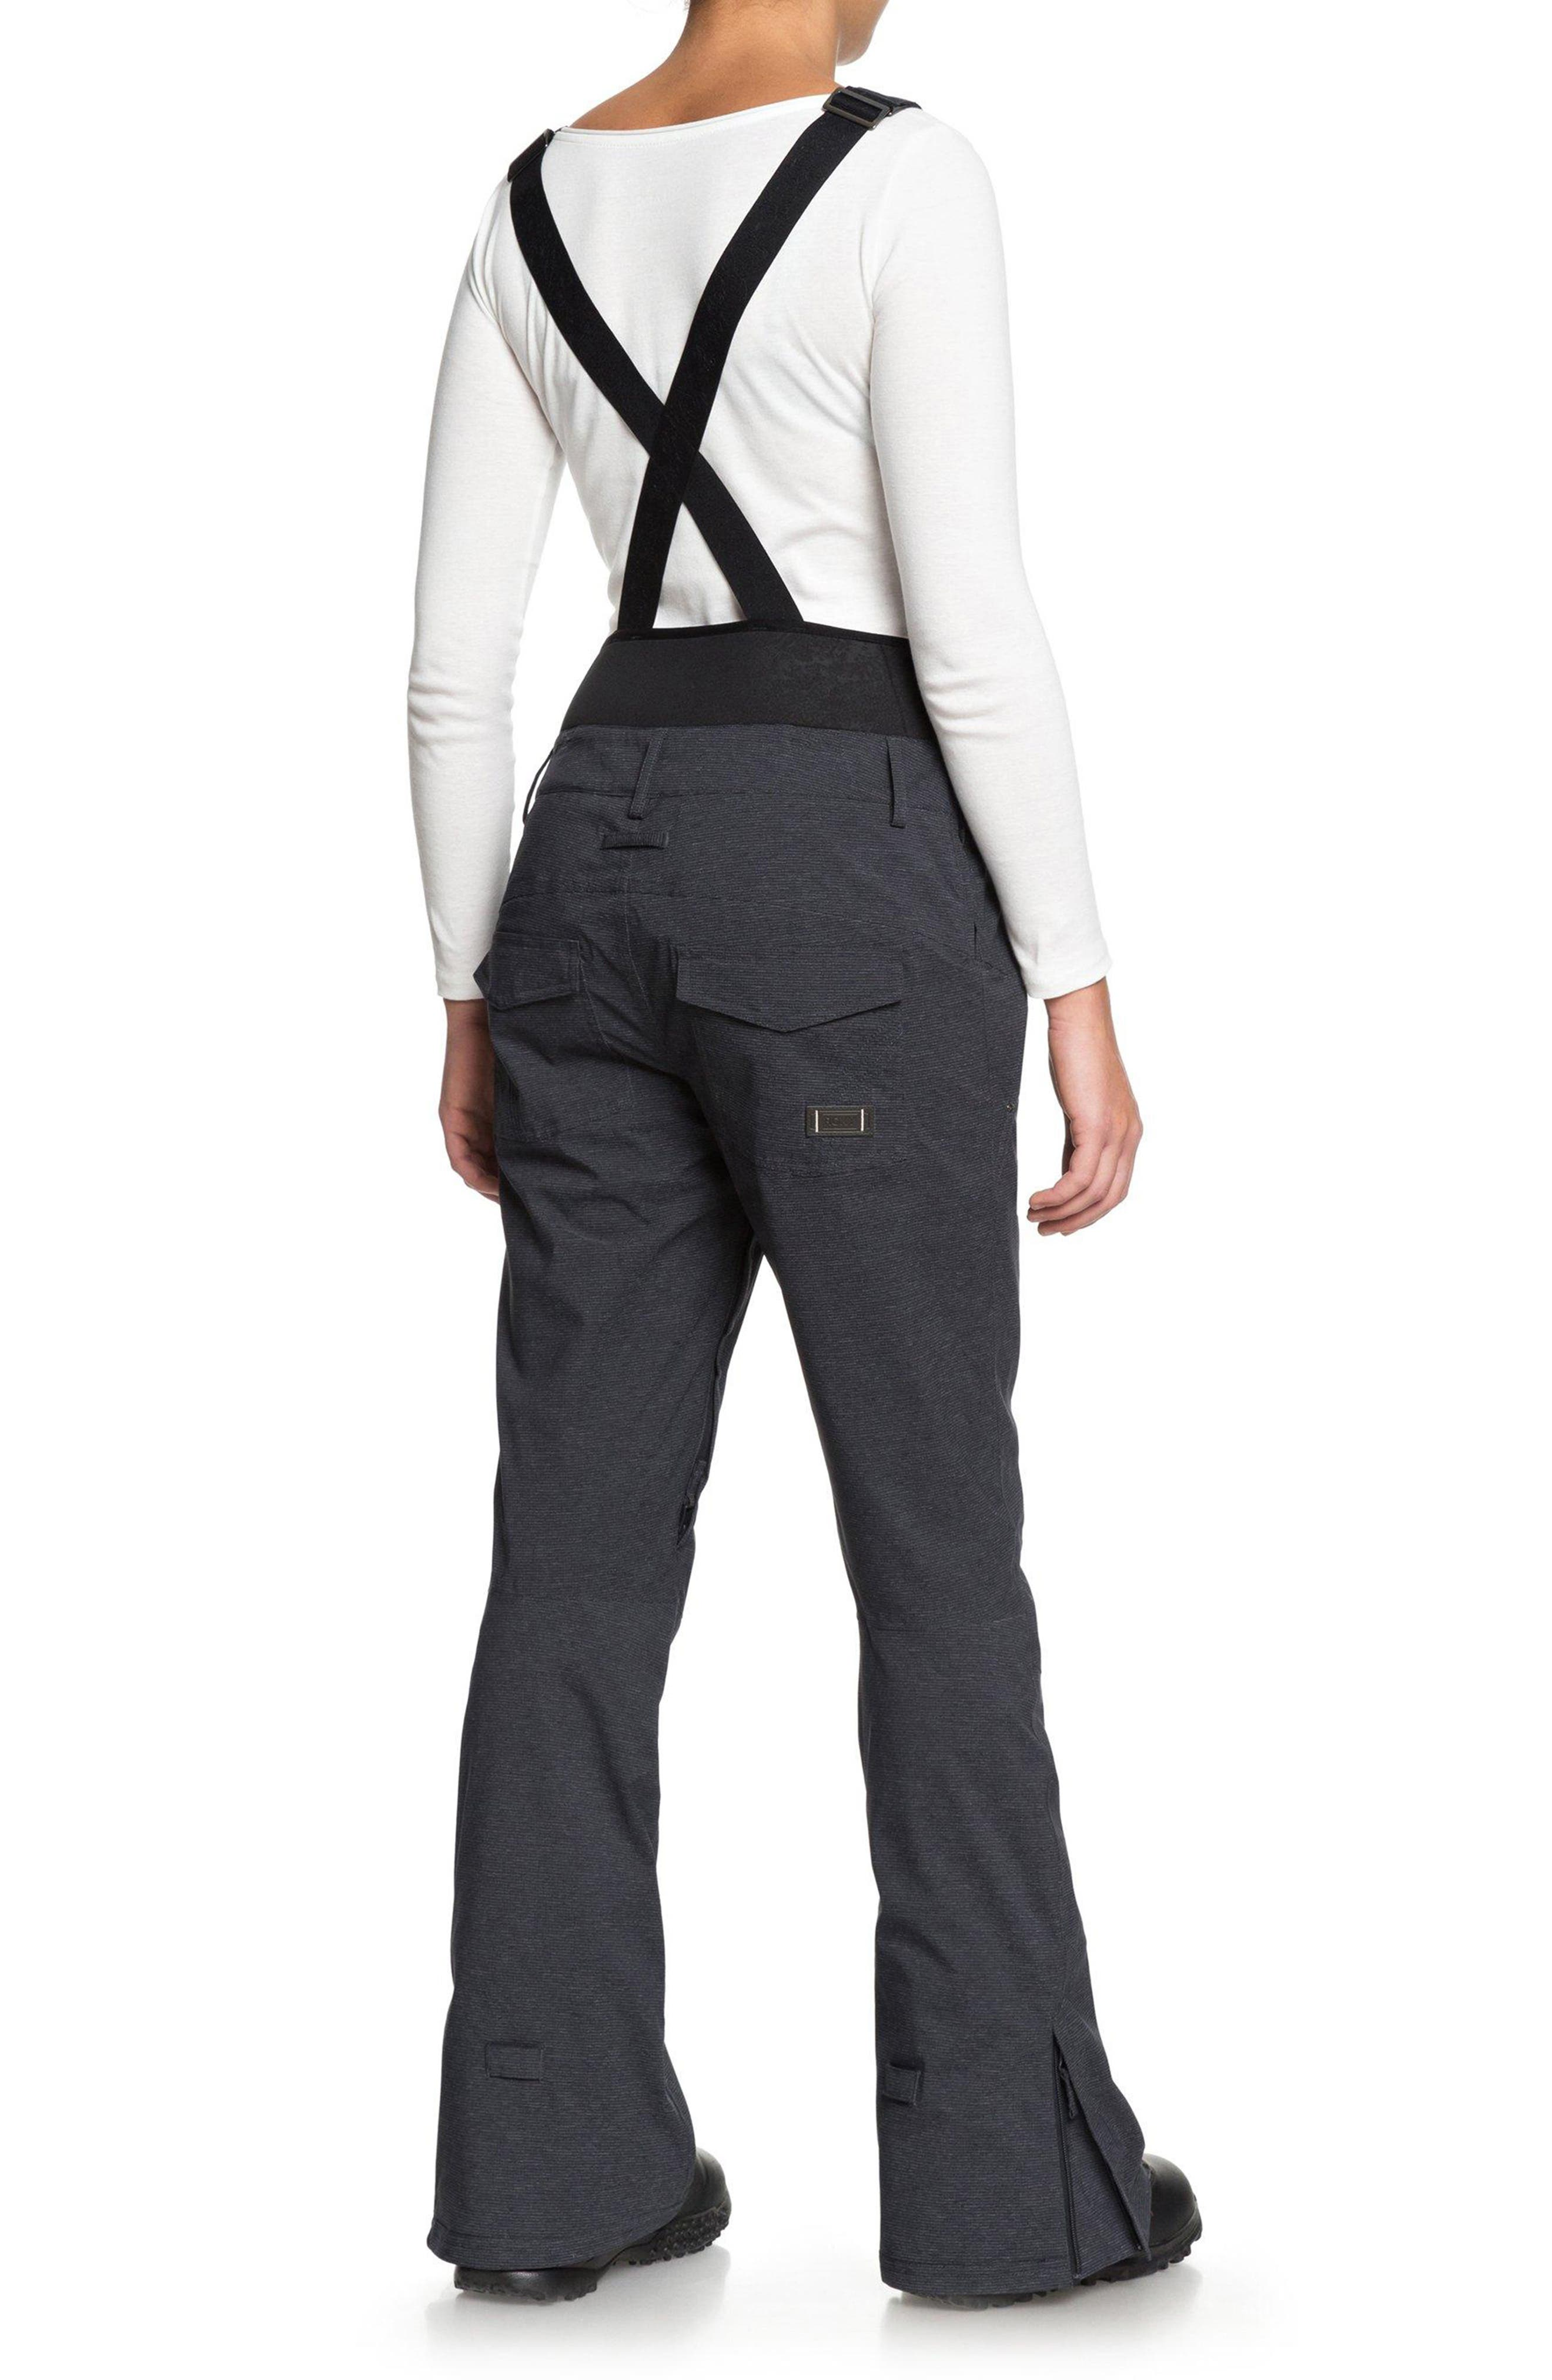 Torah Bright Vitality Bib Snow Pants,                             Alternate thumbnail 6, color,                             TRUE BLACK